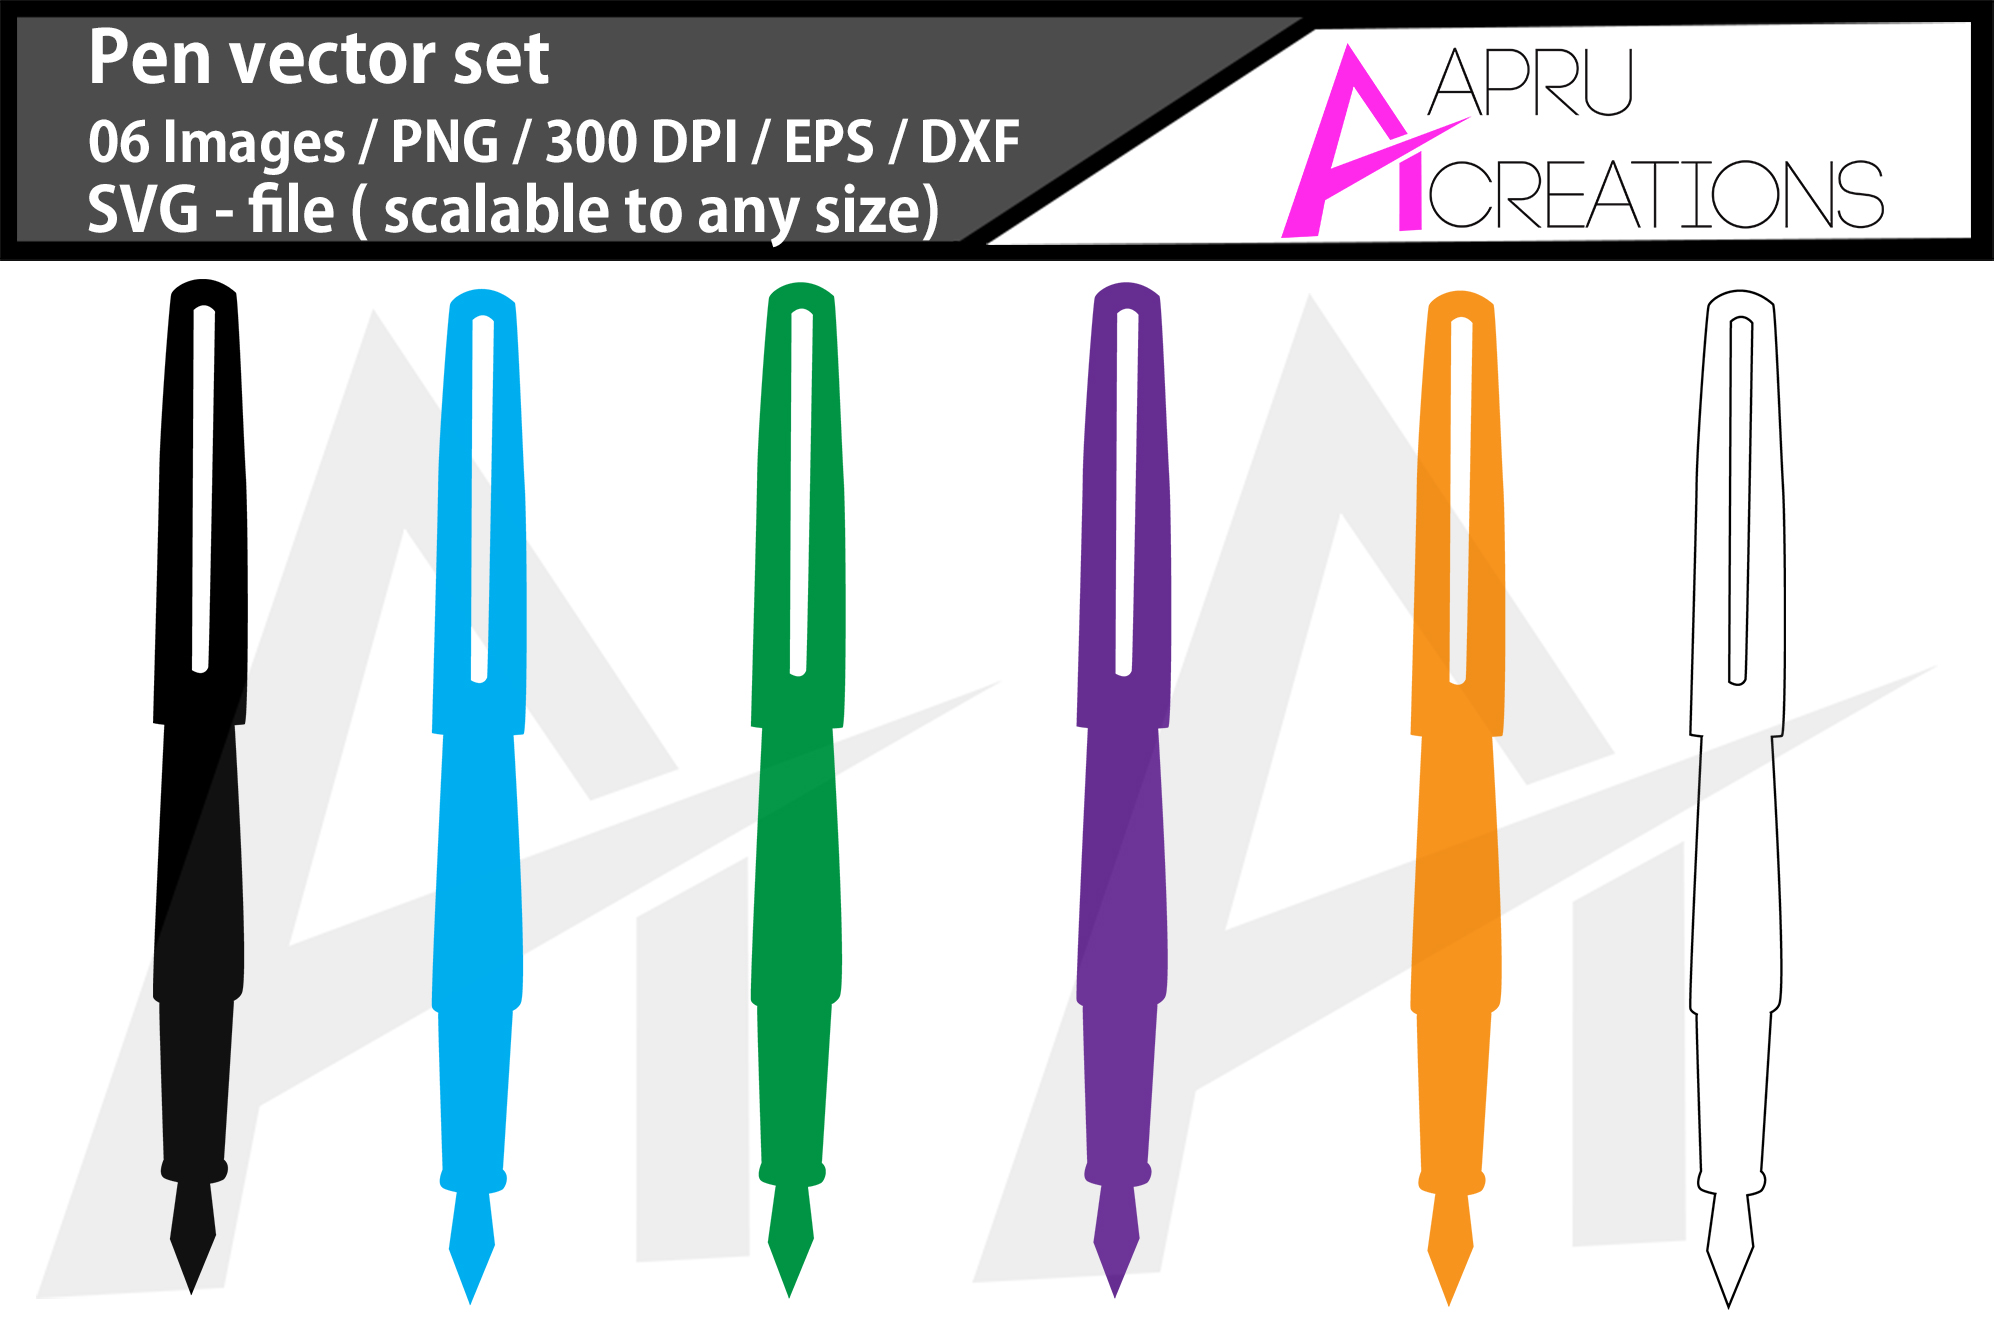 Download Free Pen Silhouette Pen Svg Pen Clipart Graphic By Aparnastjp for Cricut Explore, Silhouette and other cutting machines.